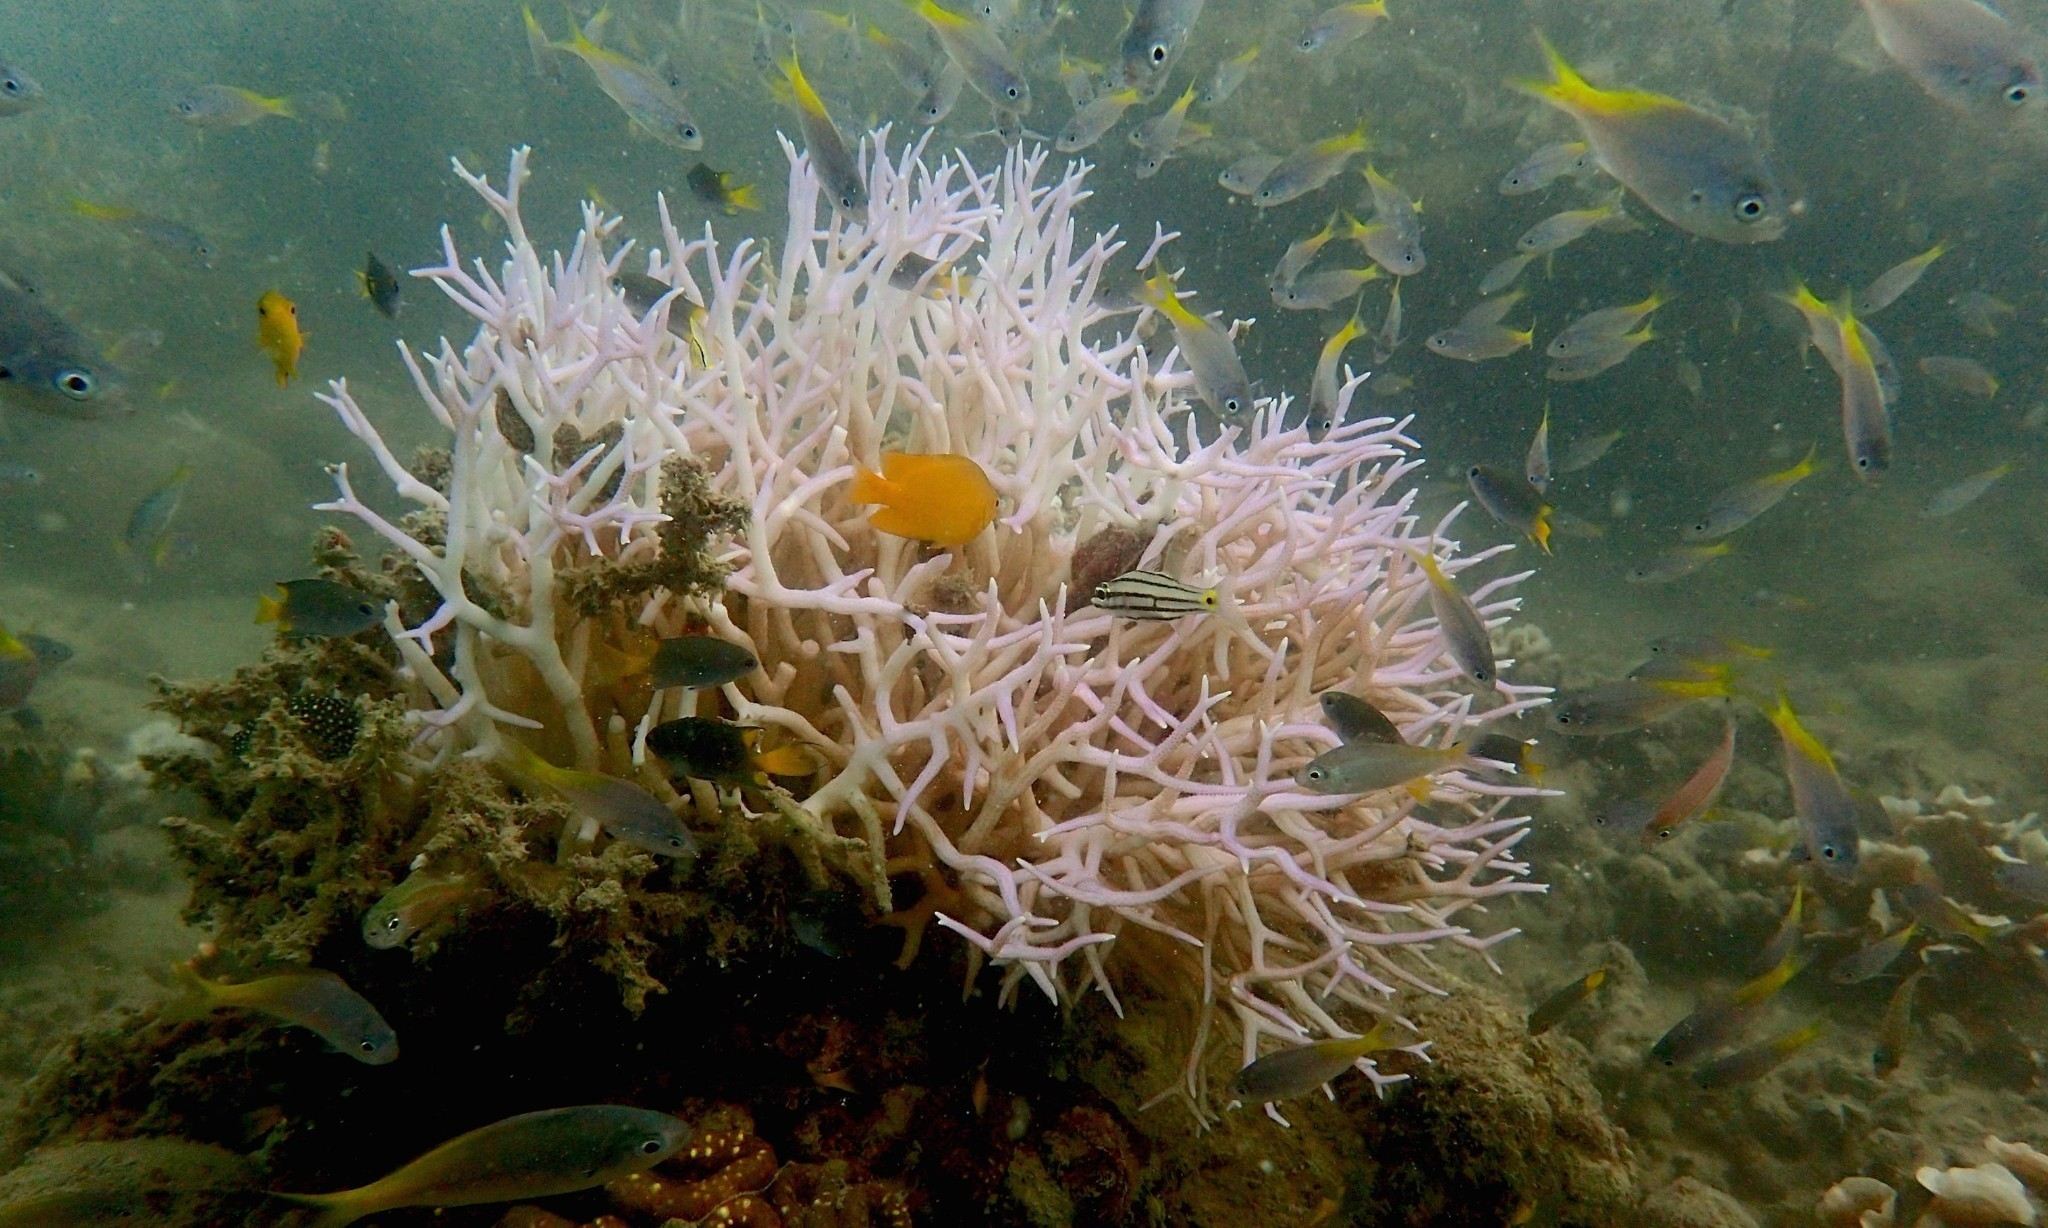 Images of new bleaching on Great Barrier Reef heighten fears of coral death